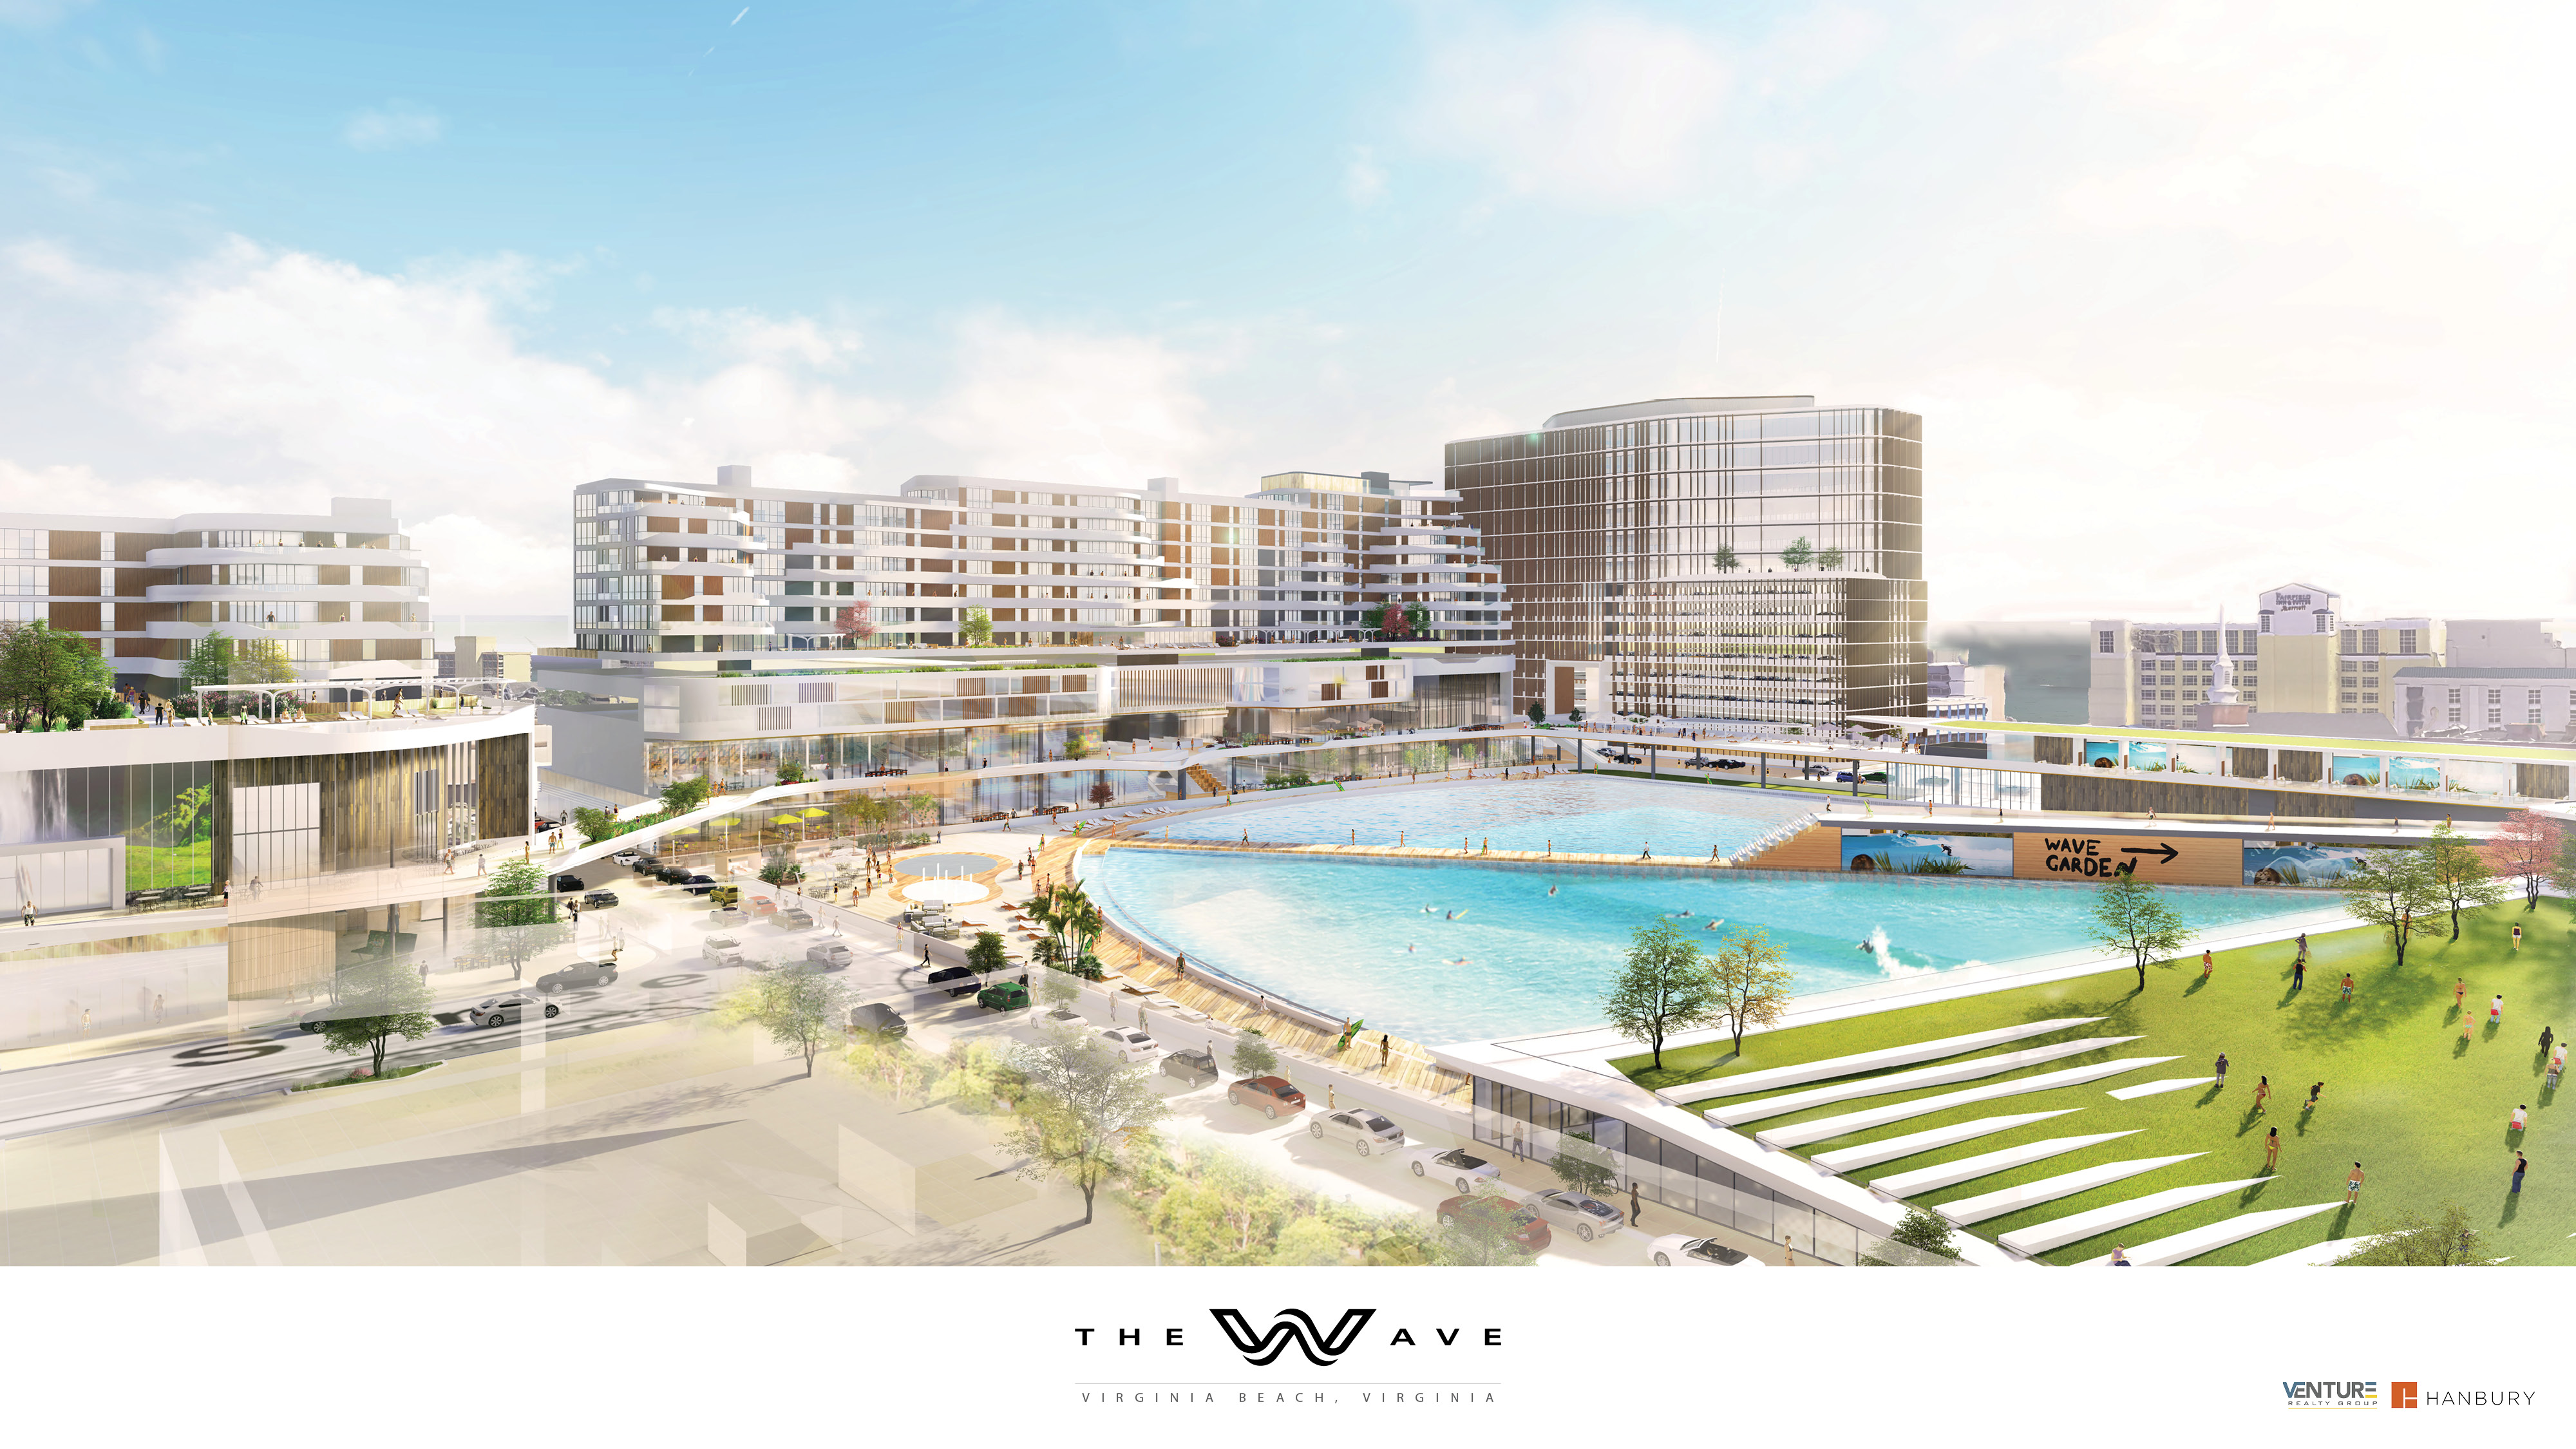 The Wave_City Council Presentation Rendering 2.jpg